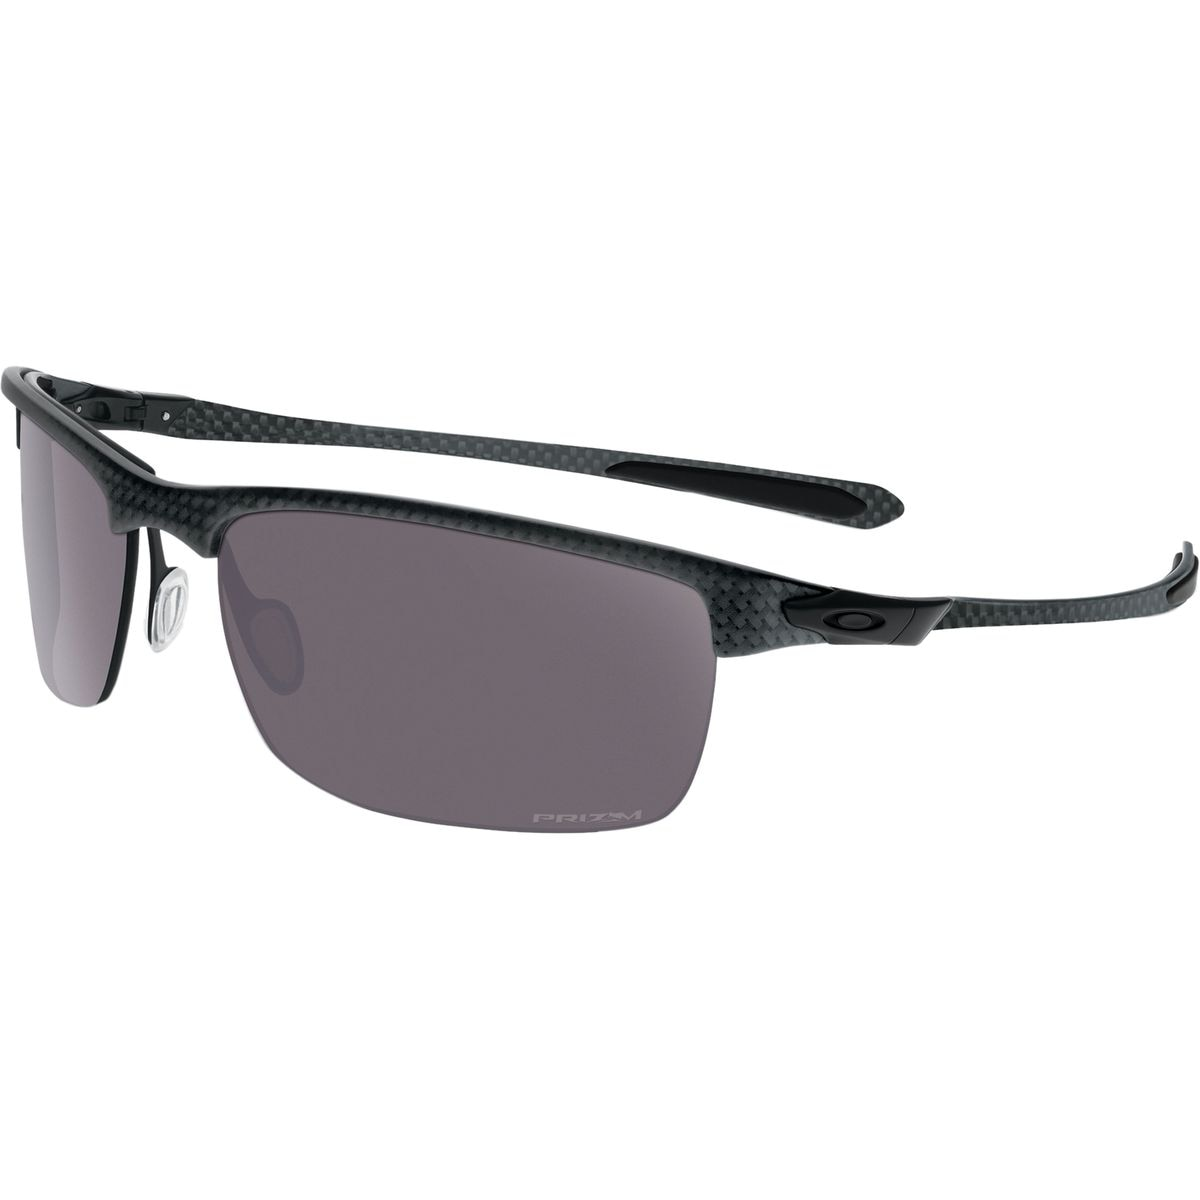 oakley sunglasses prizm  Oakley Carbon Blade Prizm Sunglasses - Polarized